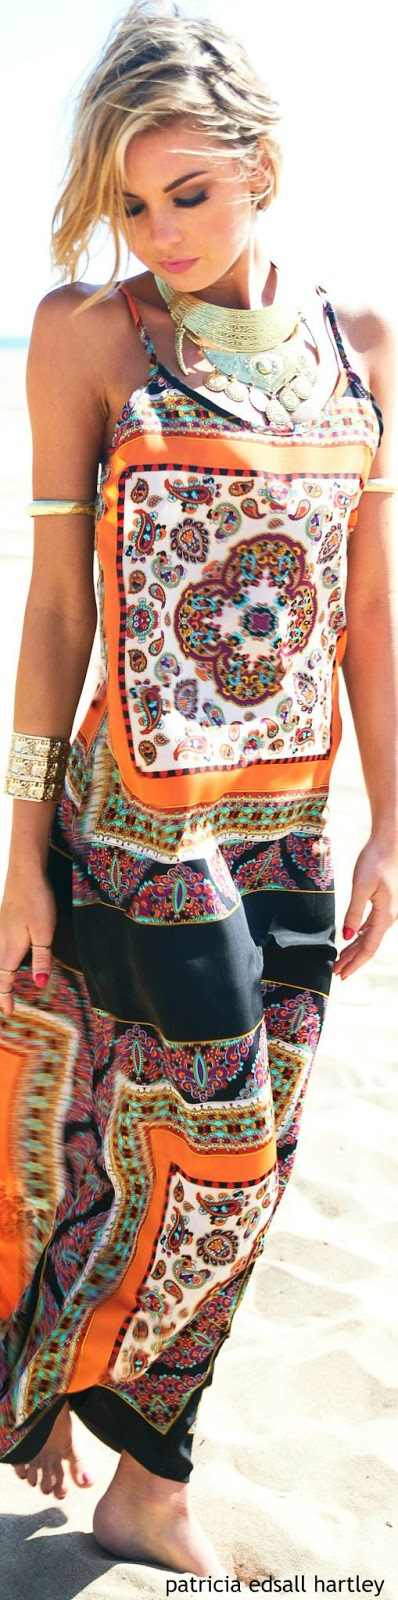 Women's fashion | Boho printed maxi dress with statement necklace and golden bracelets